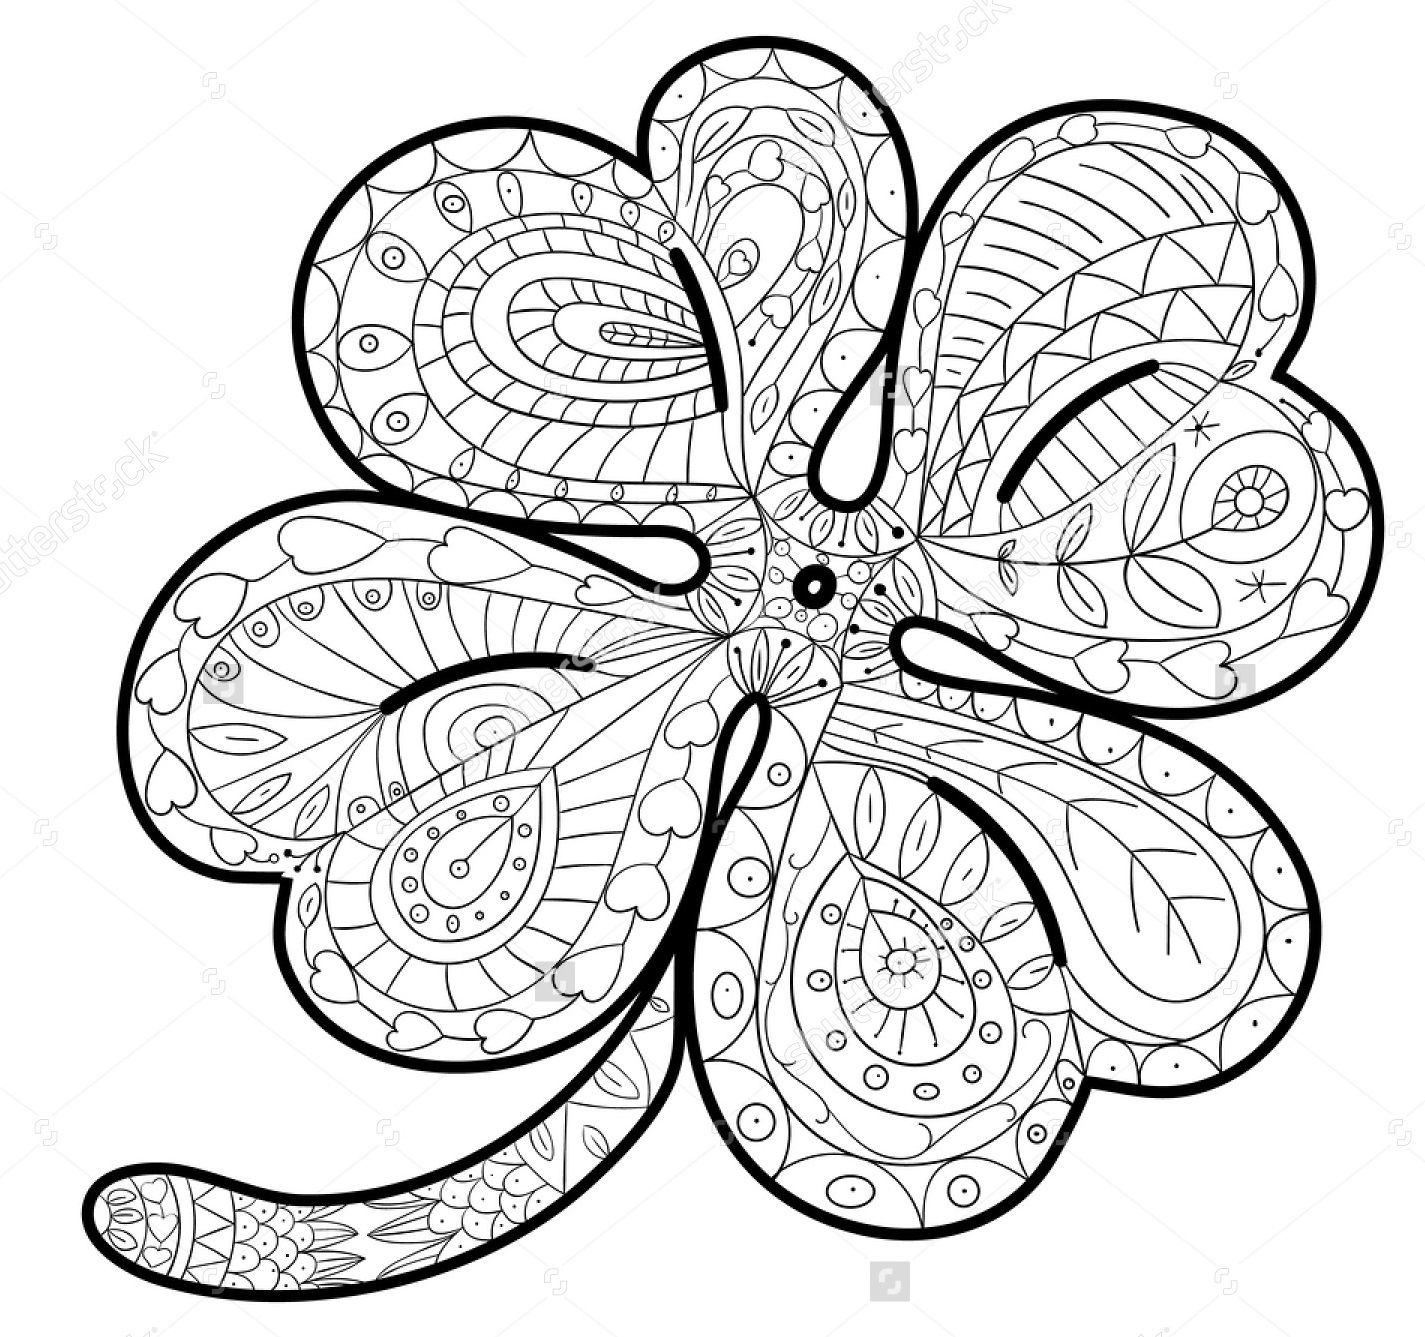 St. Patrick's Day Coloring Pages | Hallmark Ideas & Inspiration | 1337x1425